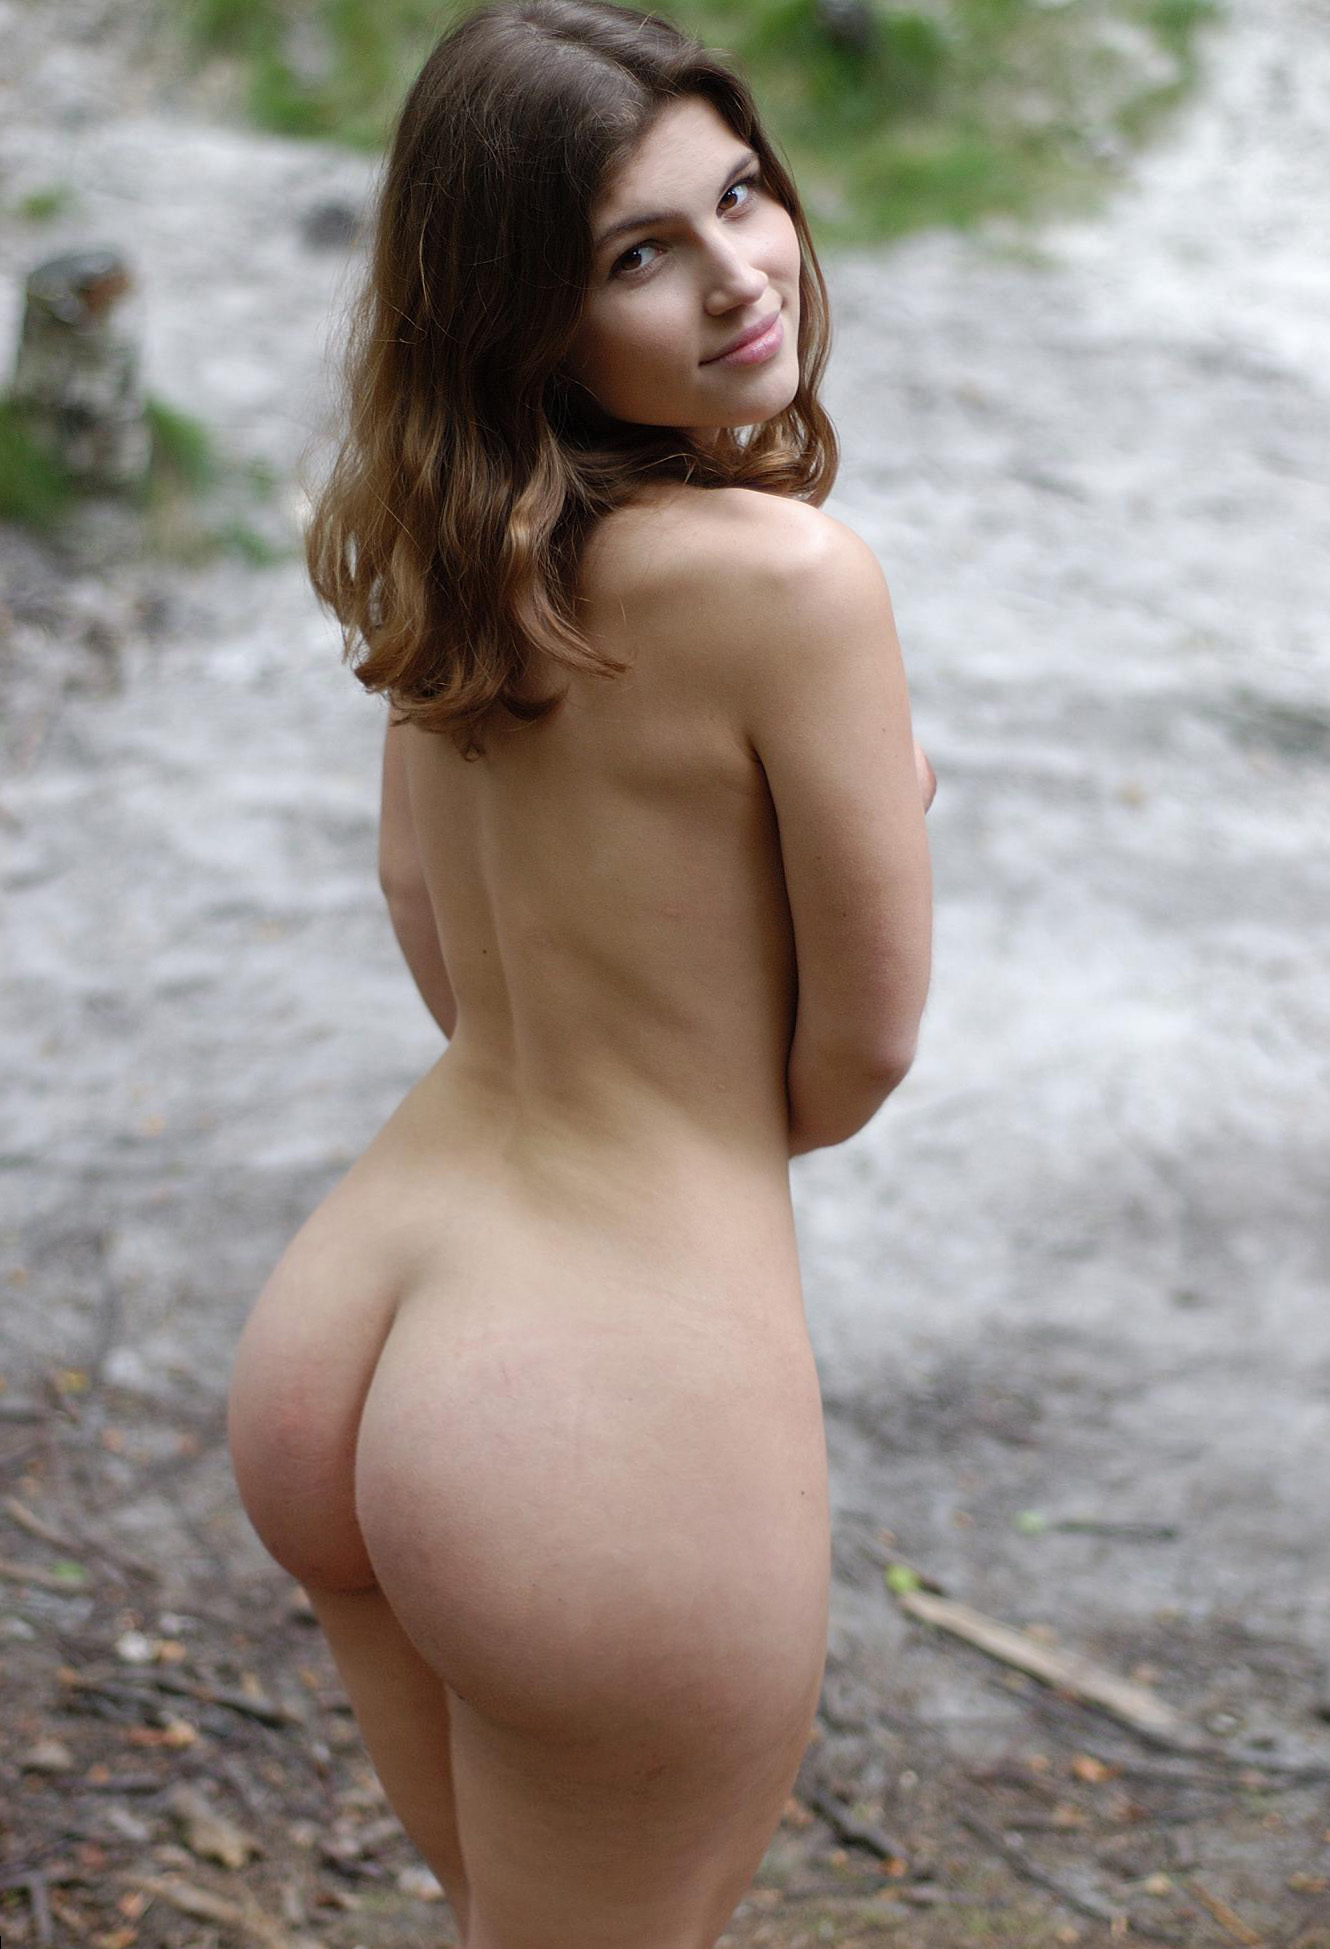 Asses outdoors naked girl